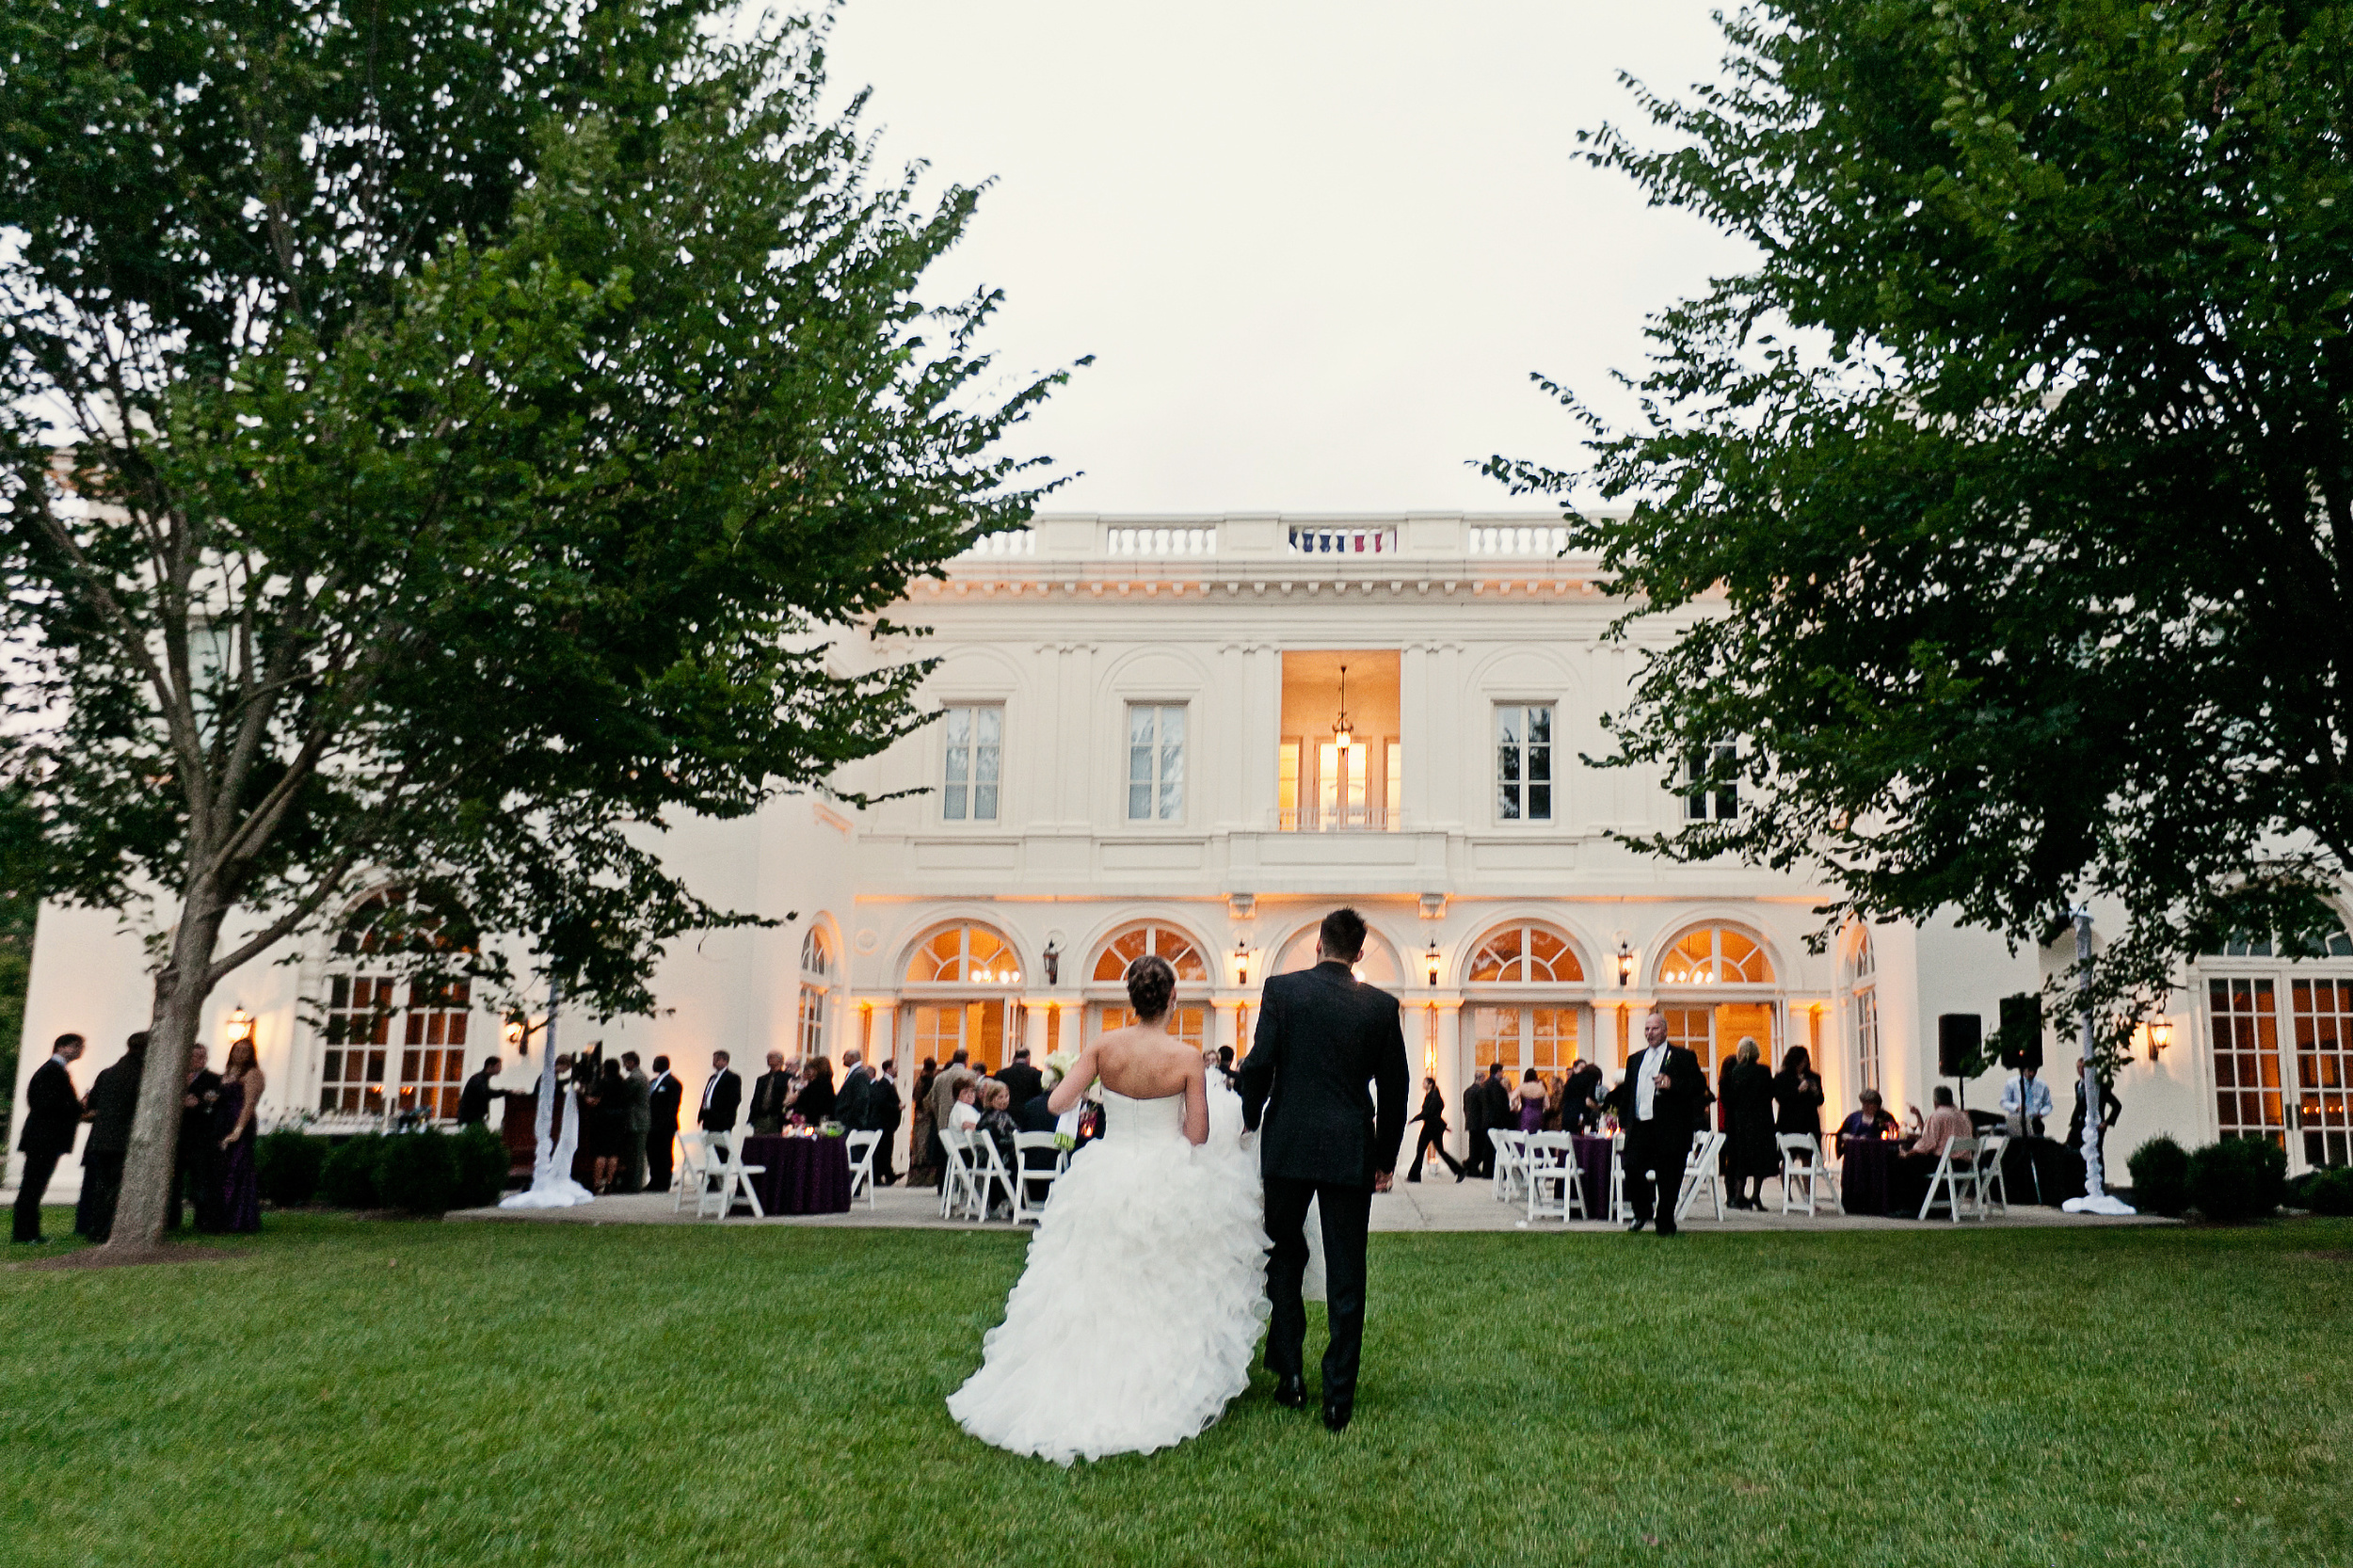 NYC-Wedding-Planner-Andrea-Freeman-Events-Wadsworth-Mansion-CT-11.jpg